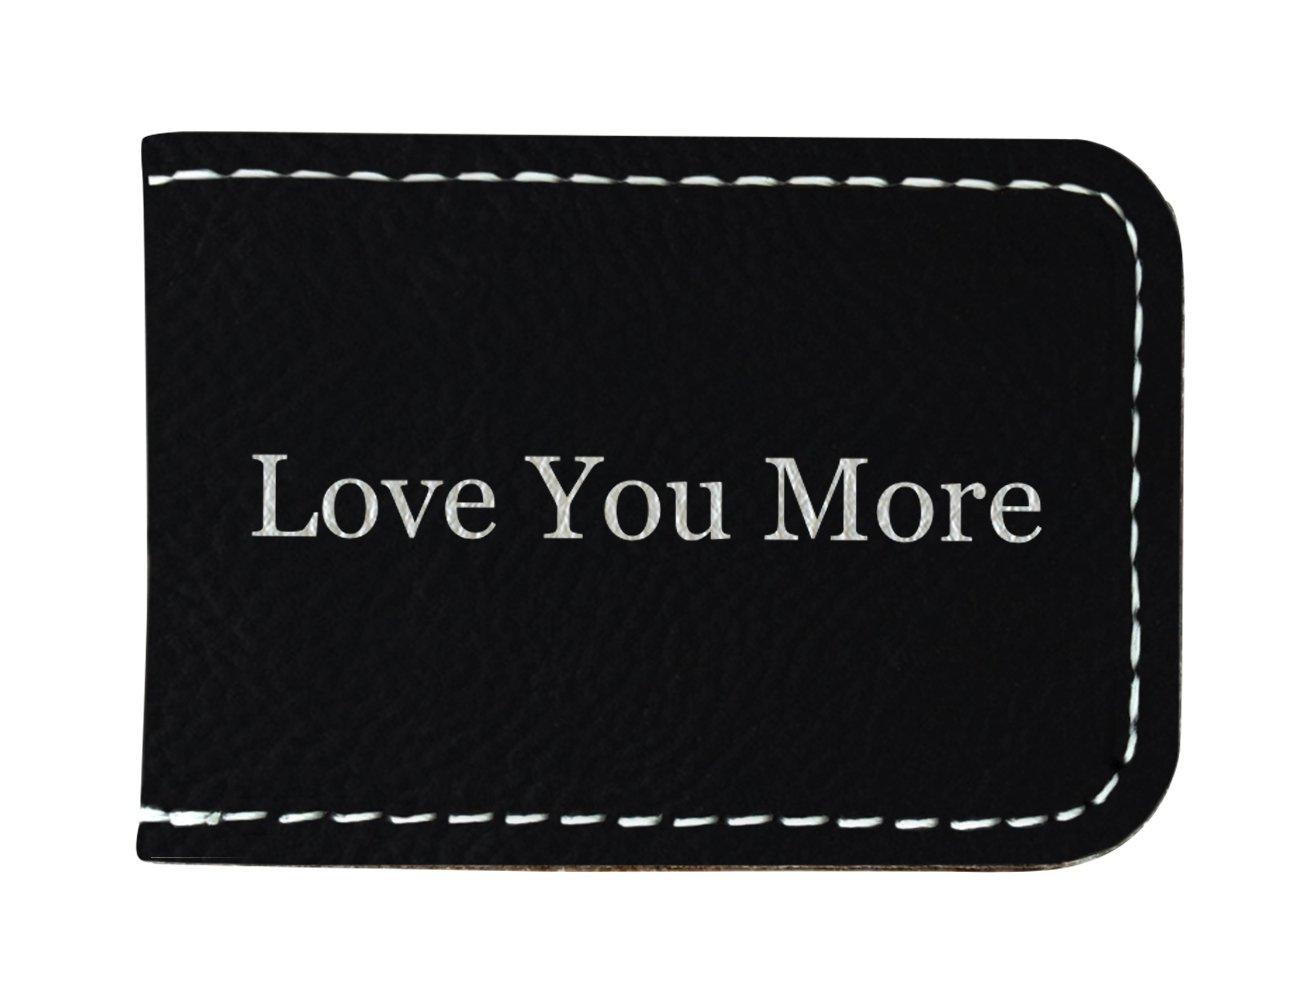 Anniversary Gifts for Men Love You More Husband Gifts Fiance Gifts 3rd Leather Anniversary Gifts 3rd Anniversary Gifts Laser Engraved Leatherette Magnetic Money Clip Black